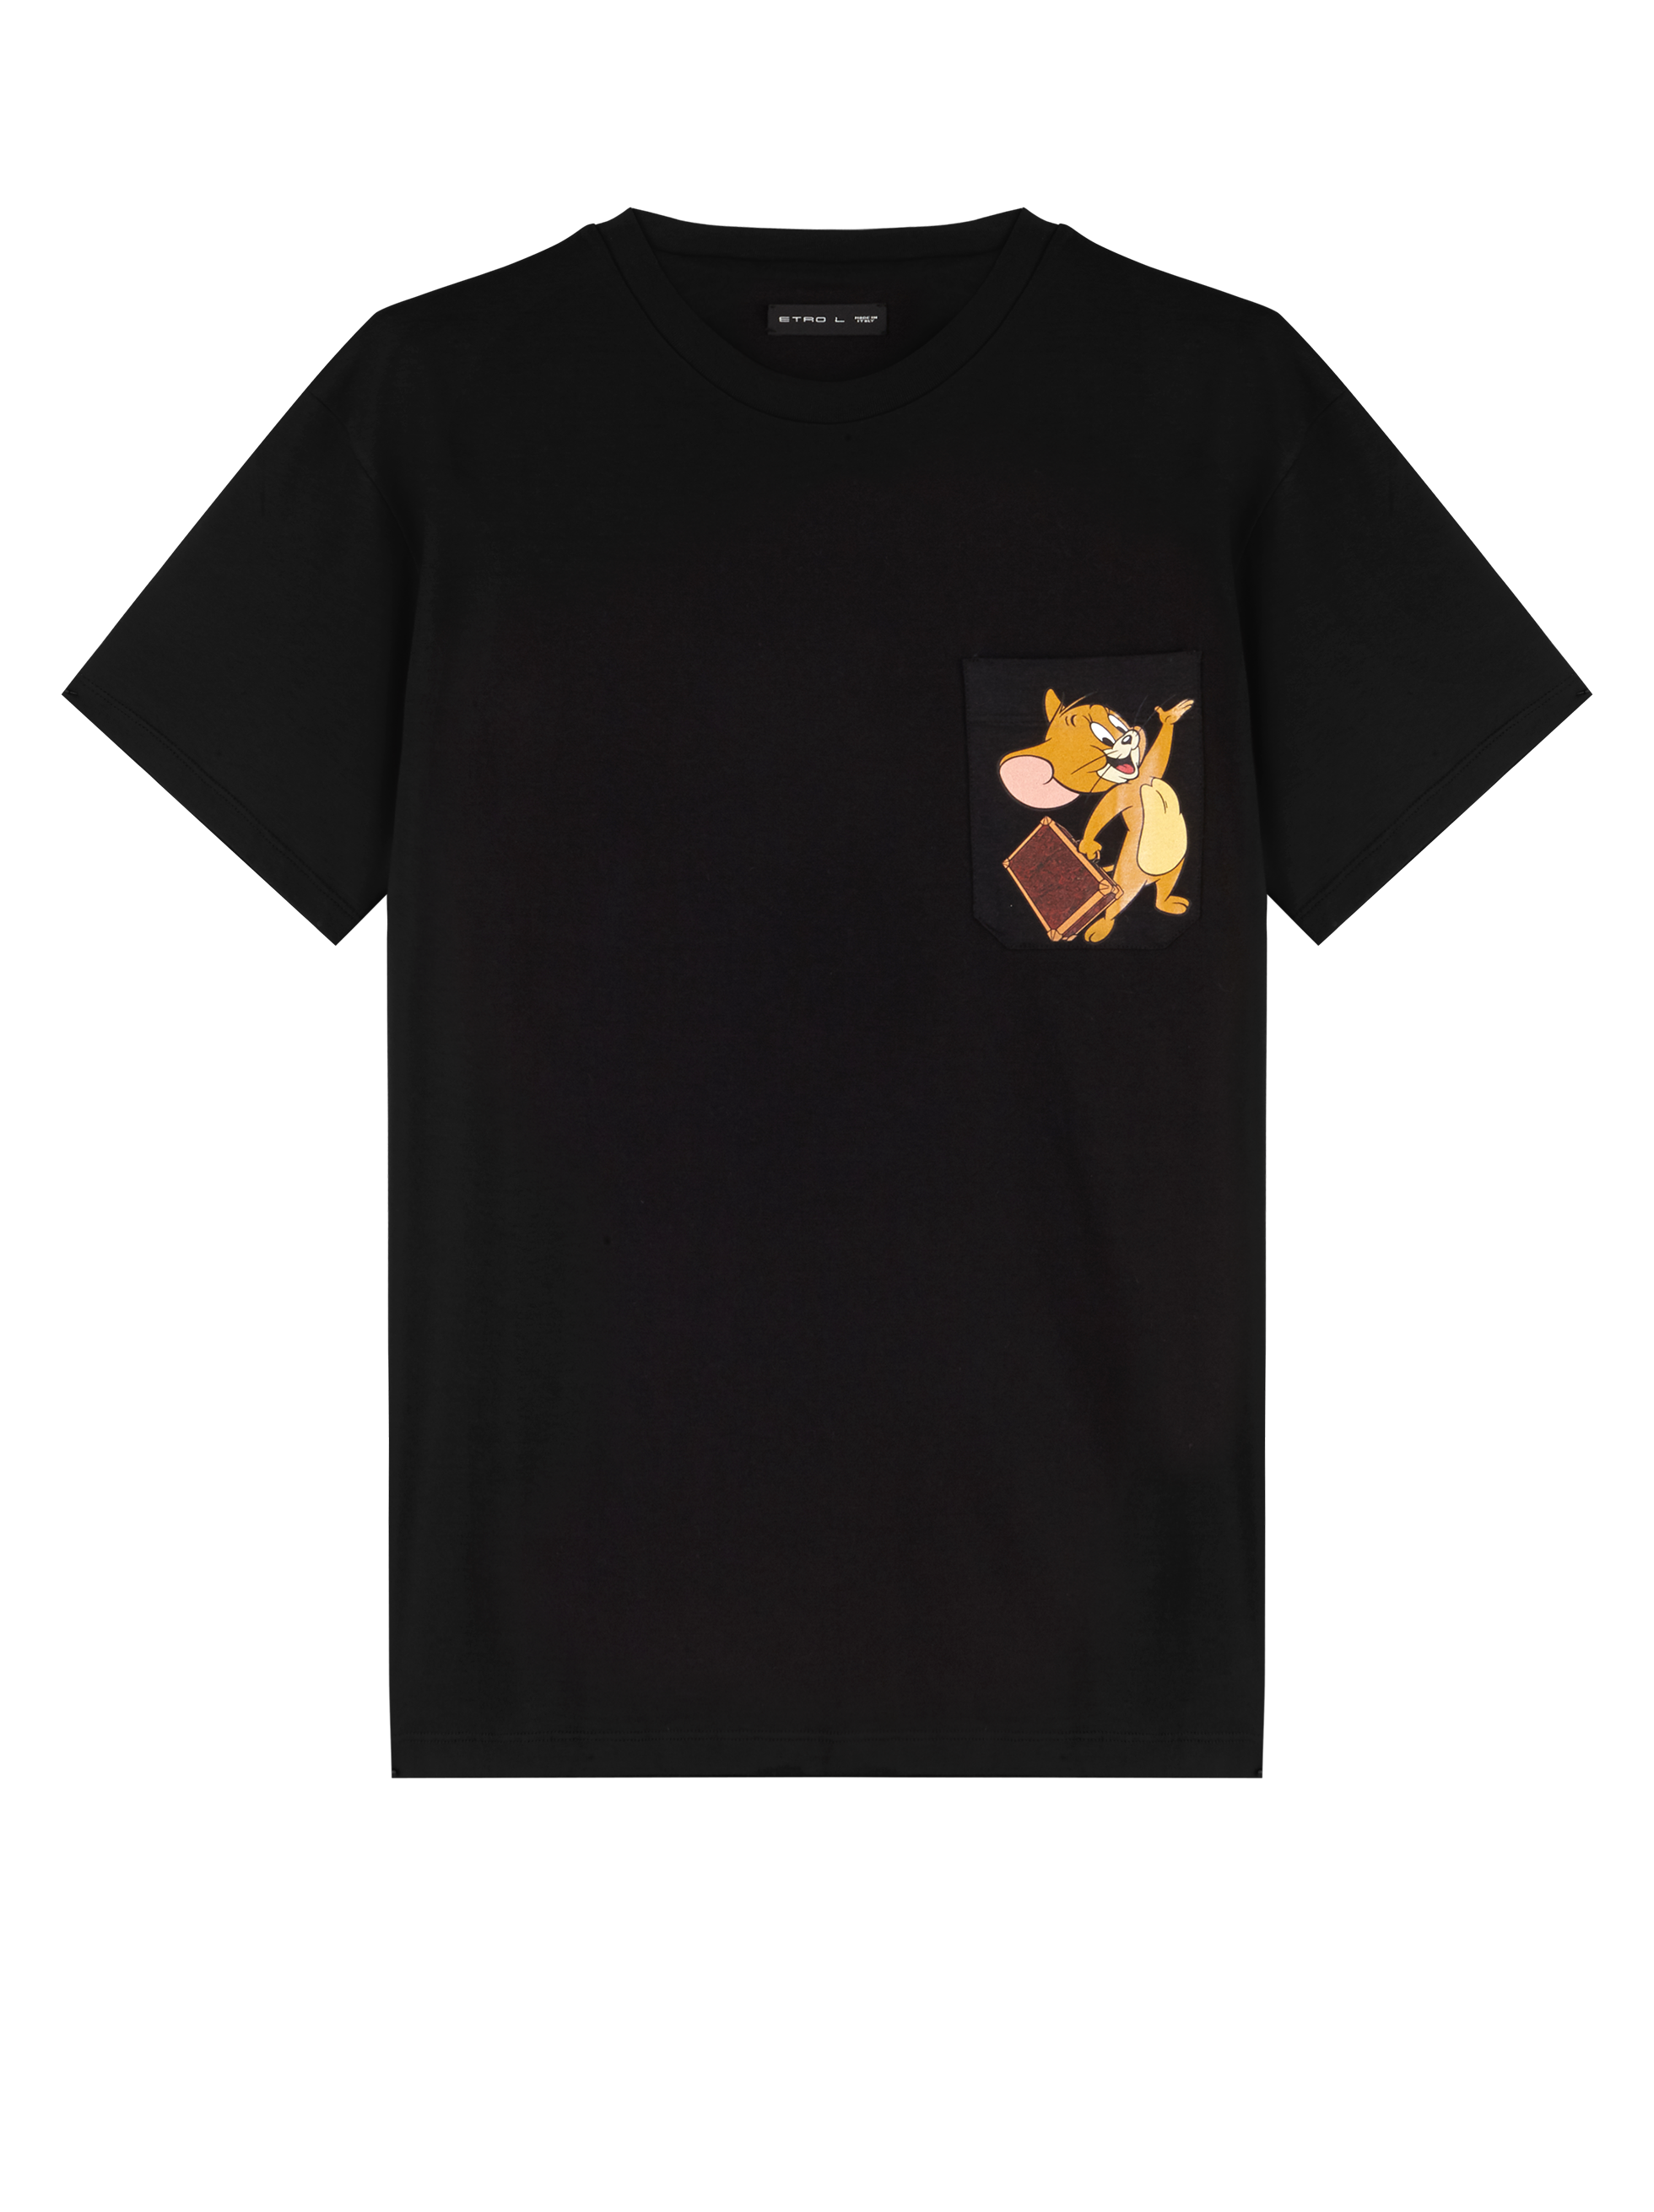 T-SHIRT WITH JERRY PRINT